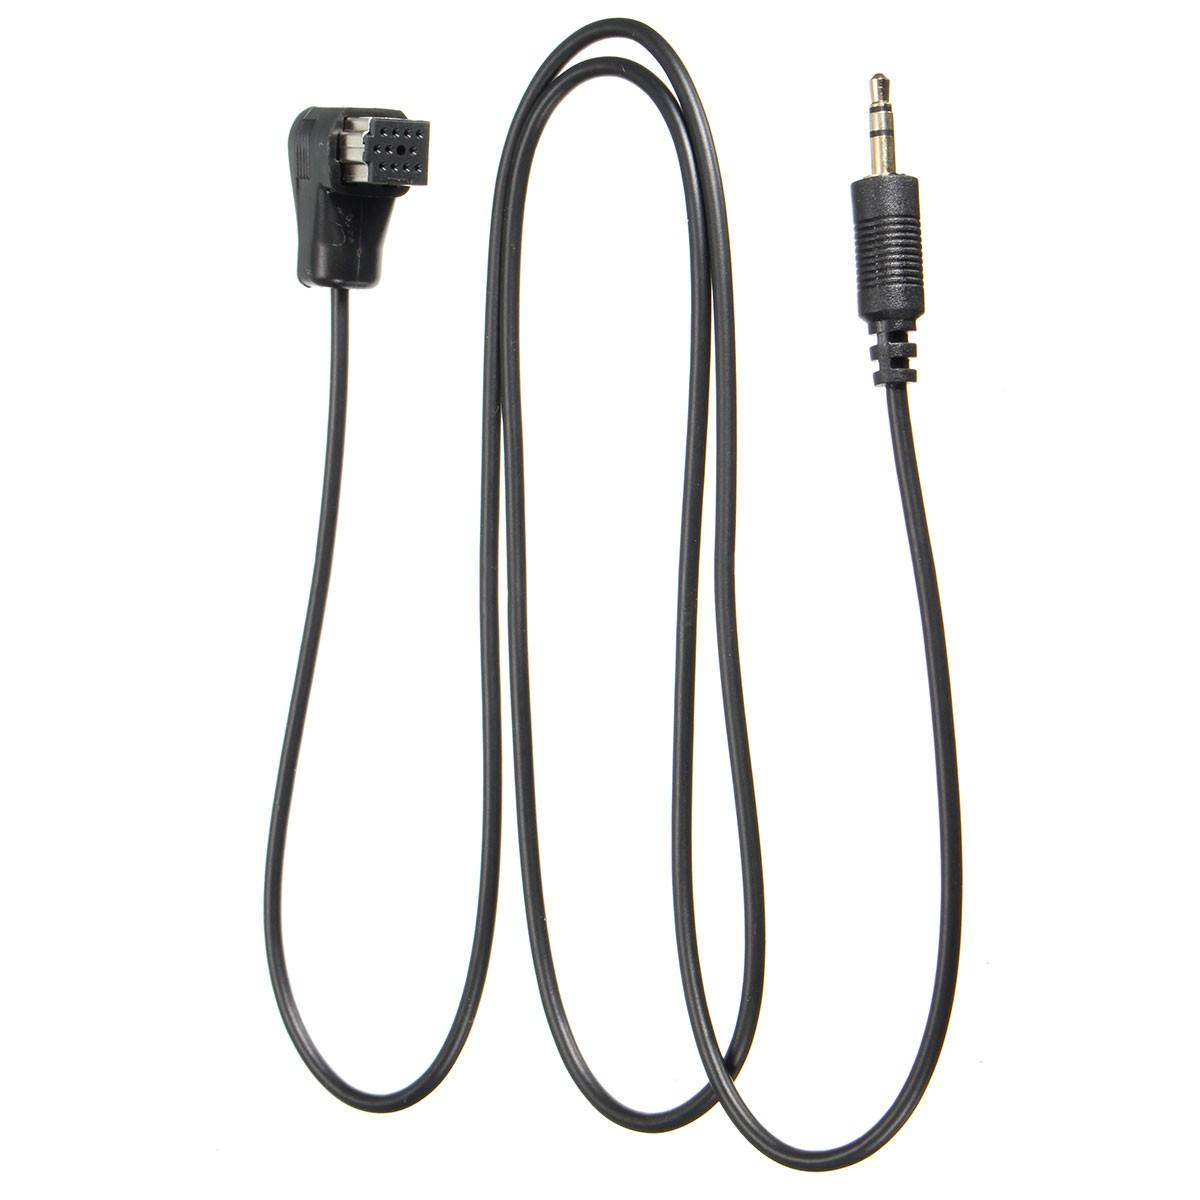 3.5mm AUX Input Cable to Car Pioneer Stereo Headunit IP-BUS Input Adapter